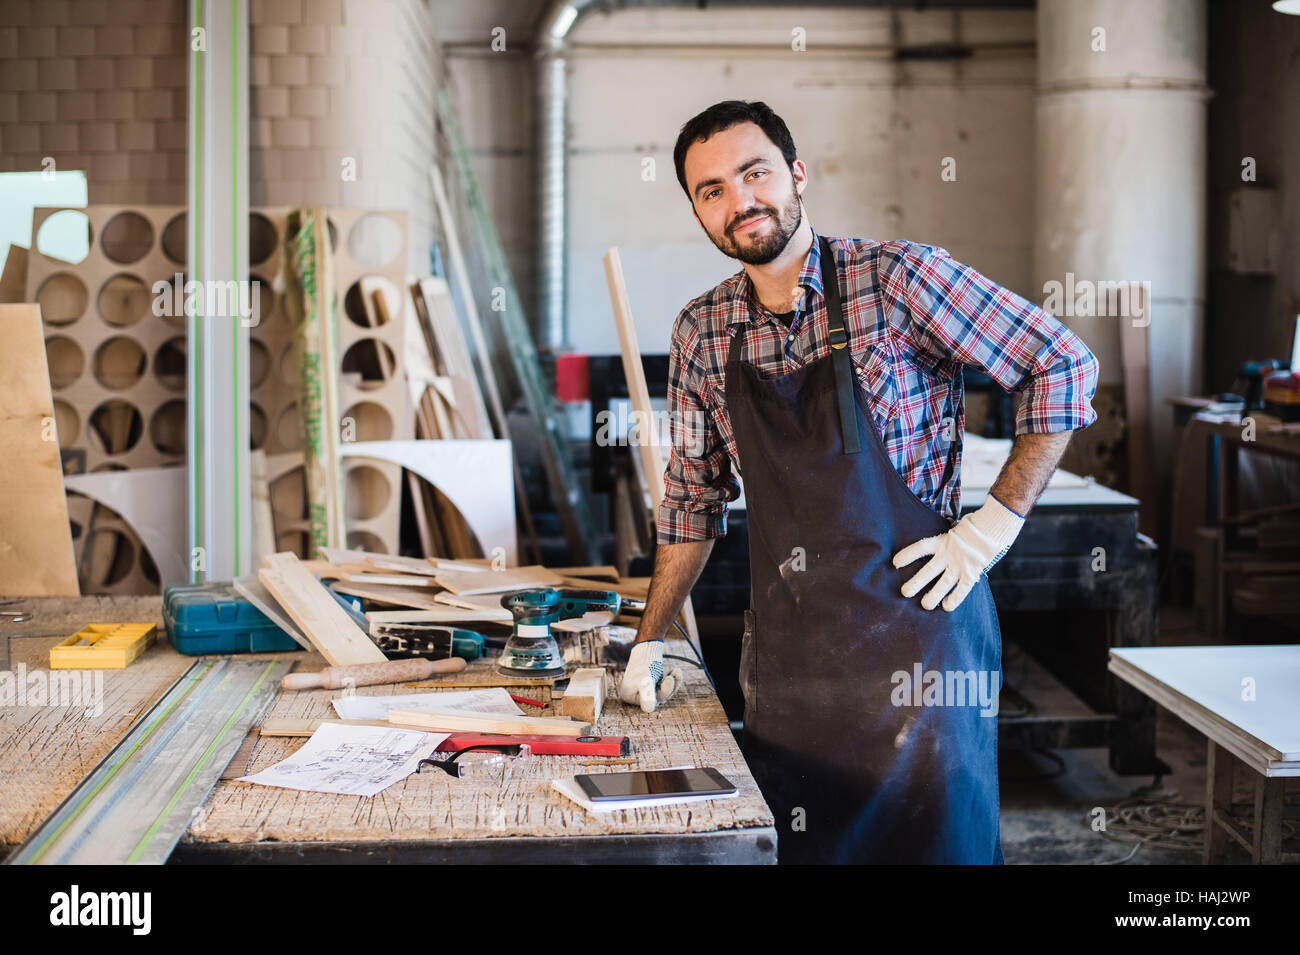 Carpenter working carefully looking at the plans - Stock Image